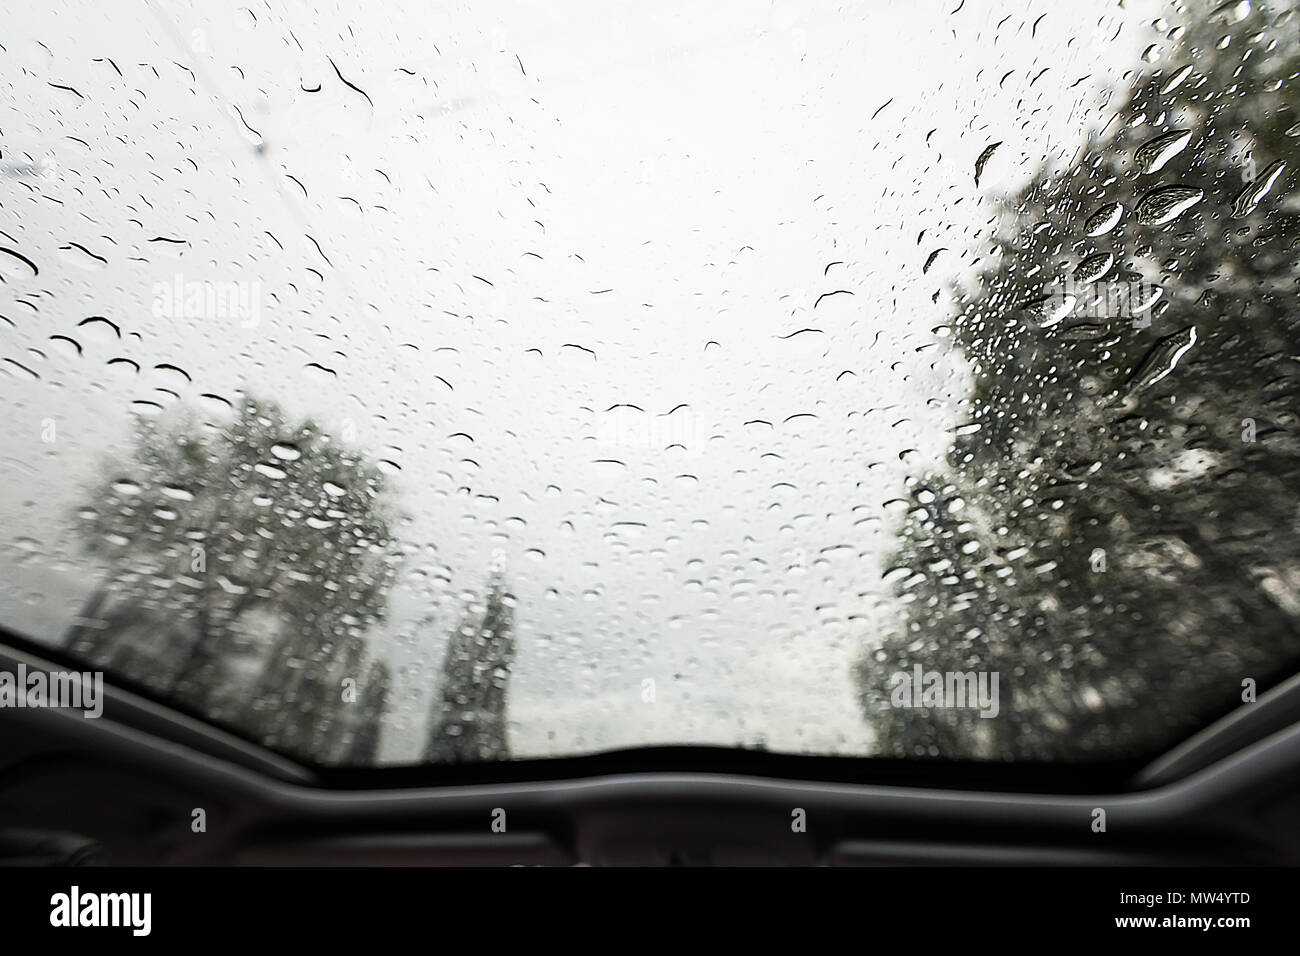 Look through windshield from inside the car at rainy weather - Stock Image